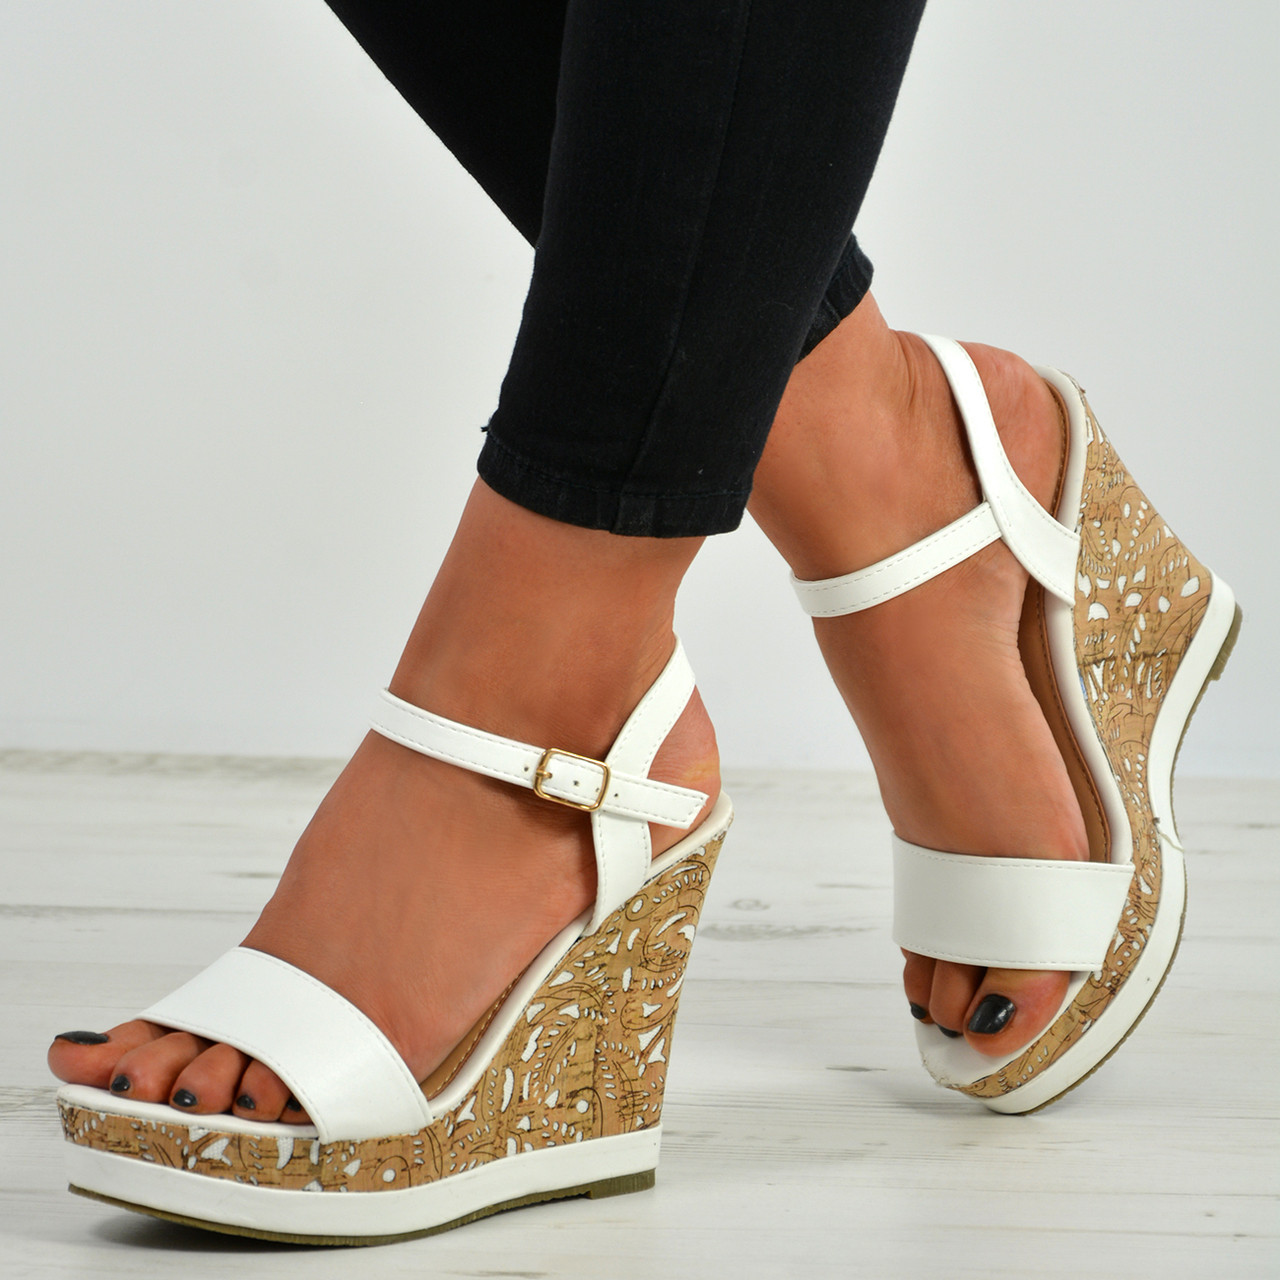 Wedge Heel Sandals Peep Toe Ankle Strap